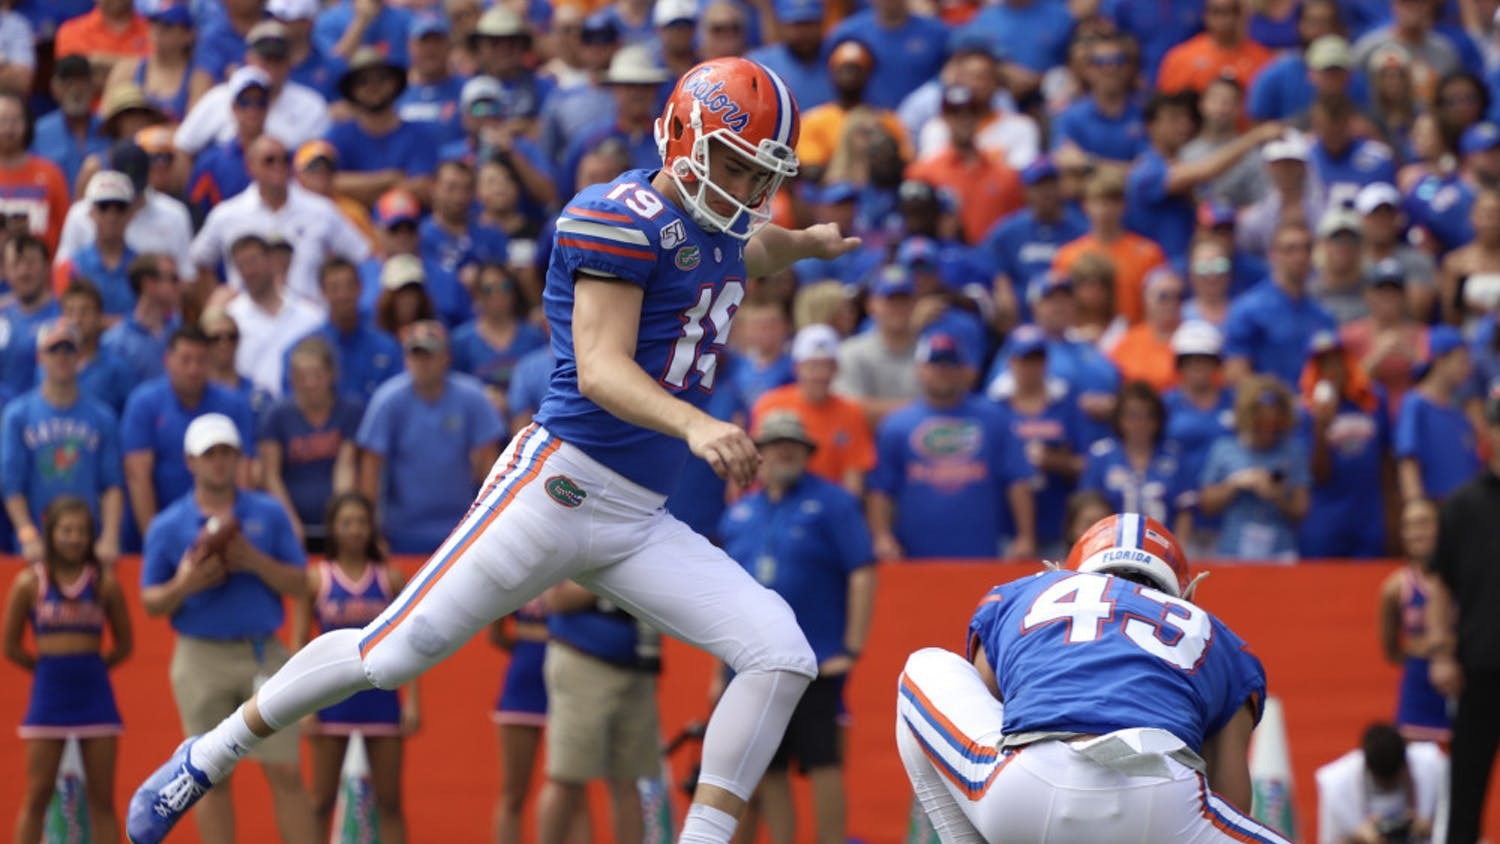 Gators kicker Evan McPherson said that holidays away from home is one of the sacrifices he makes to play Division I football at UF.